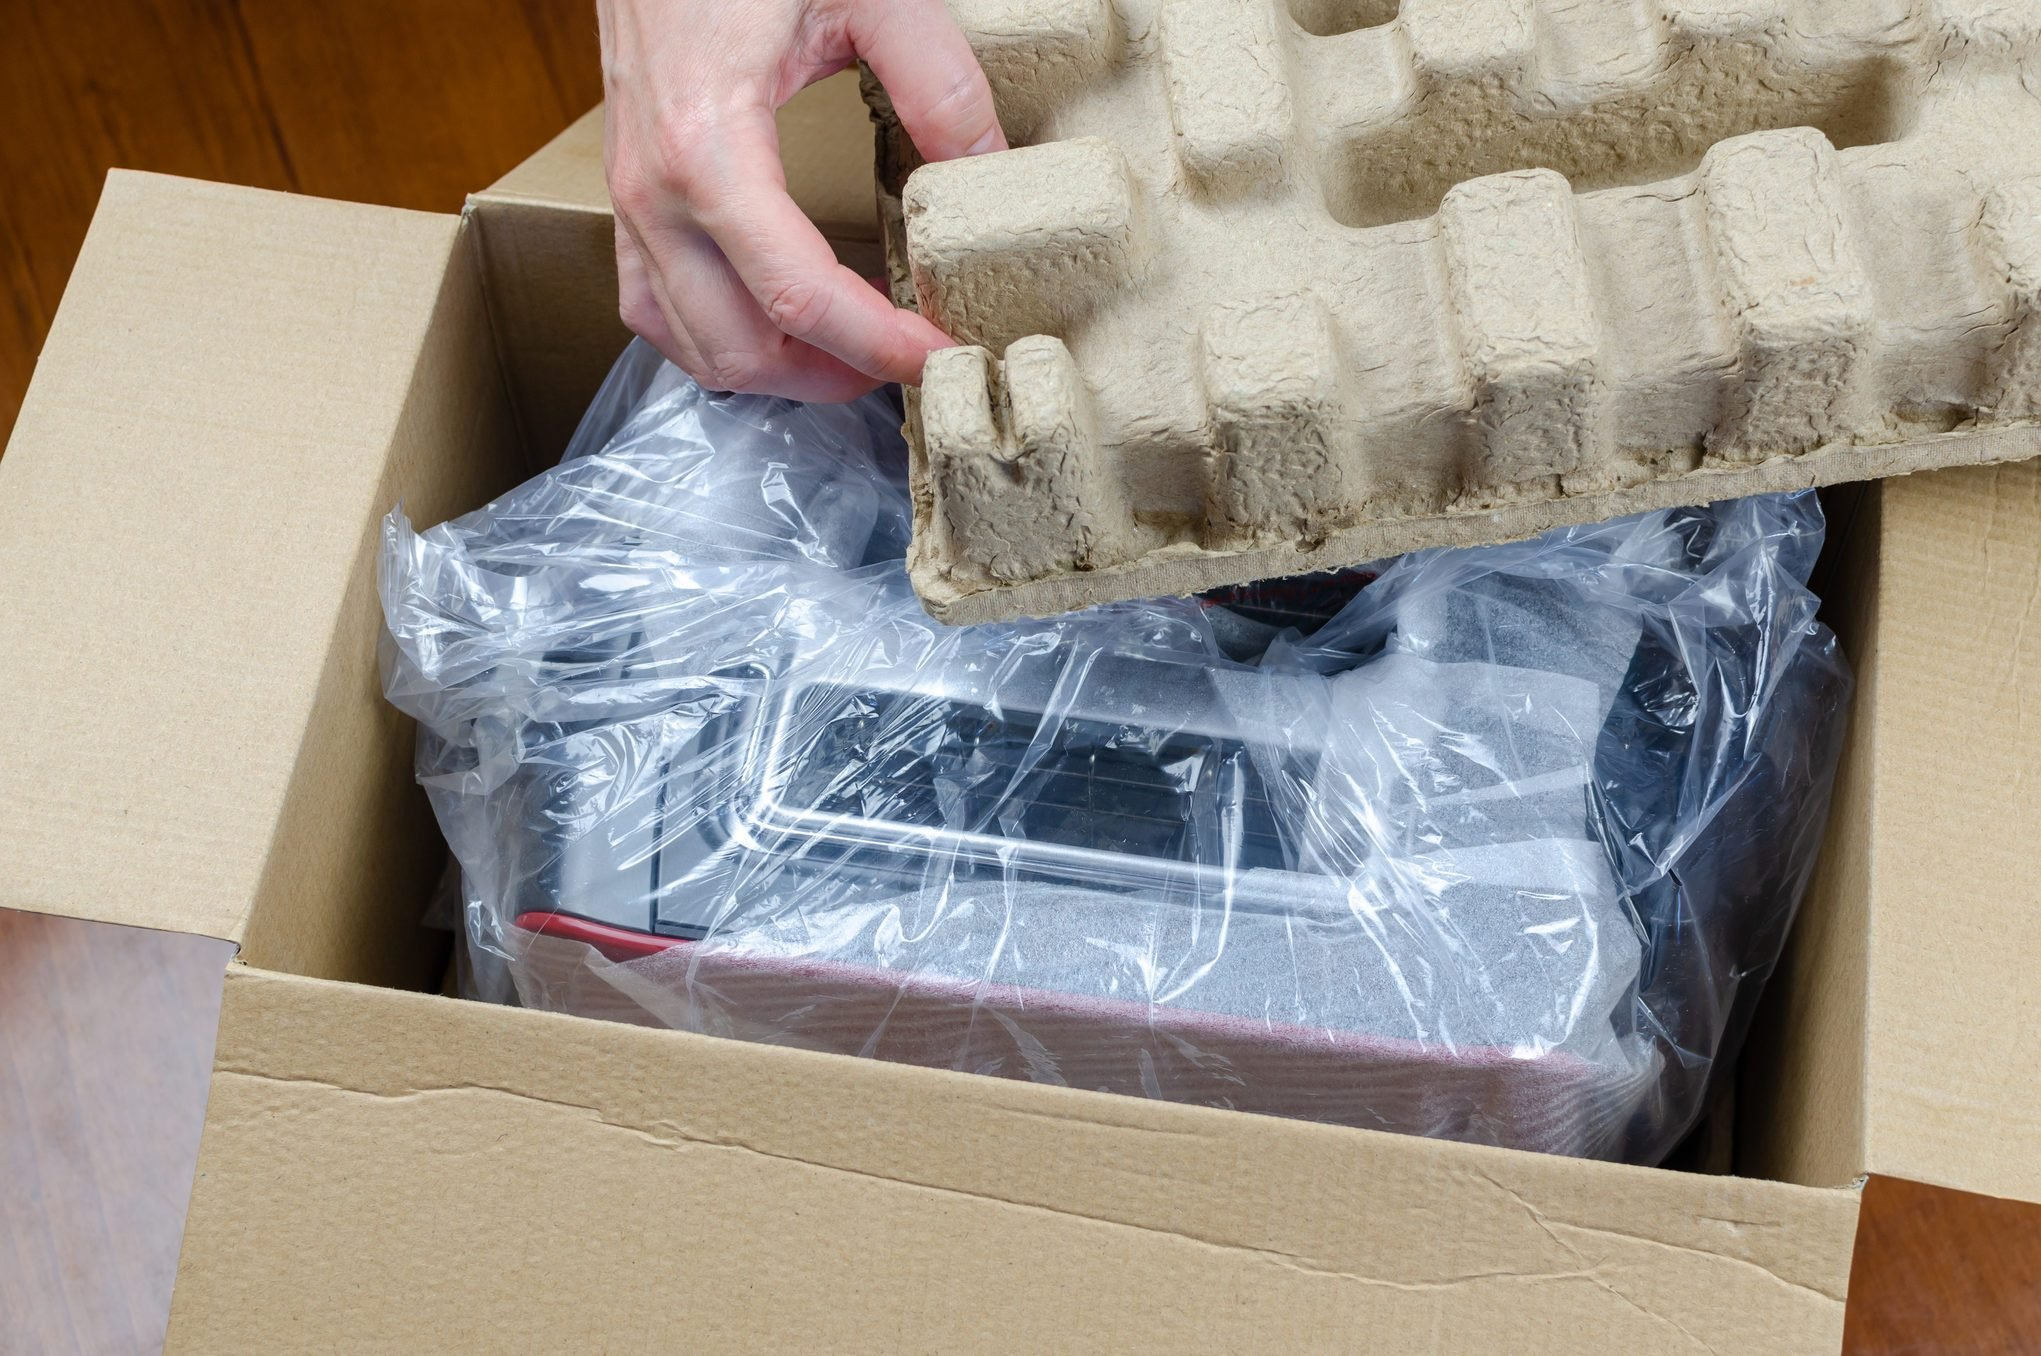 Unpacking a new toaster